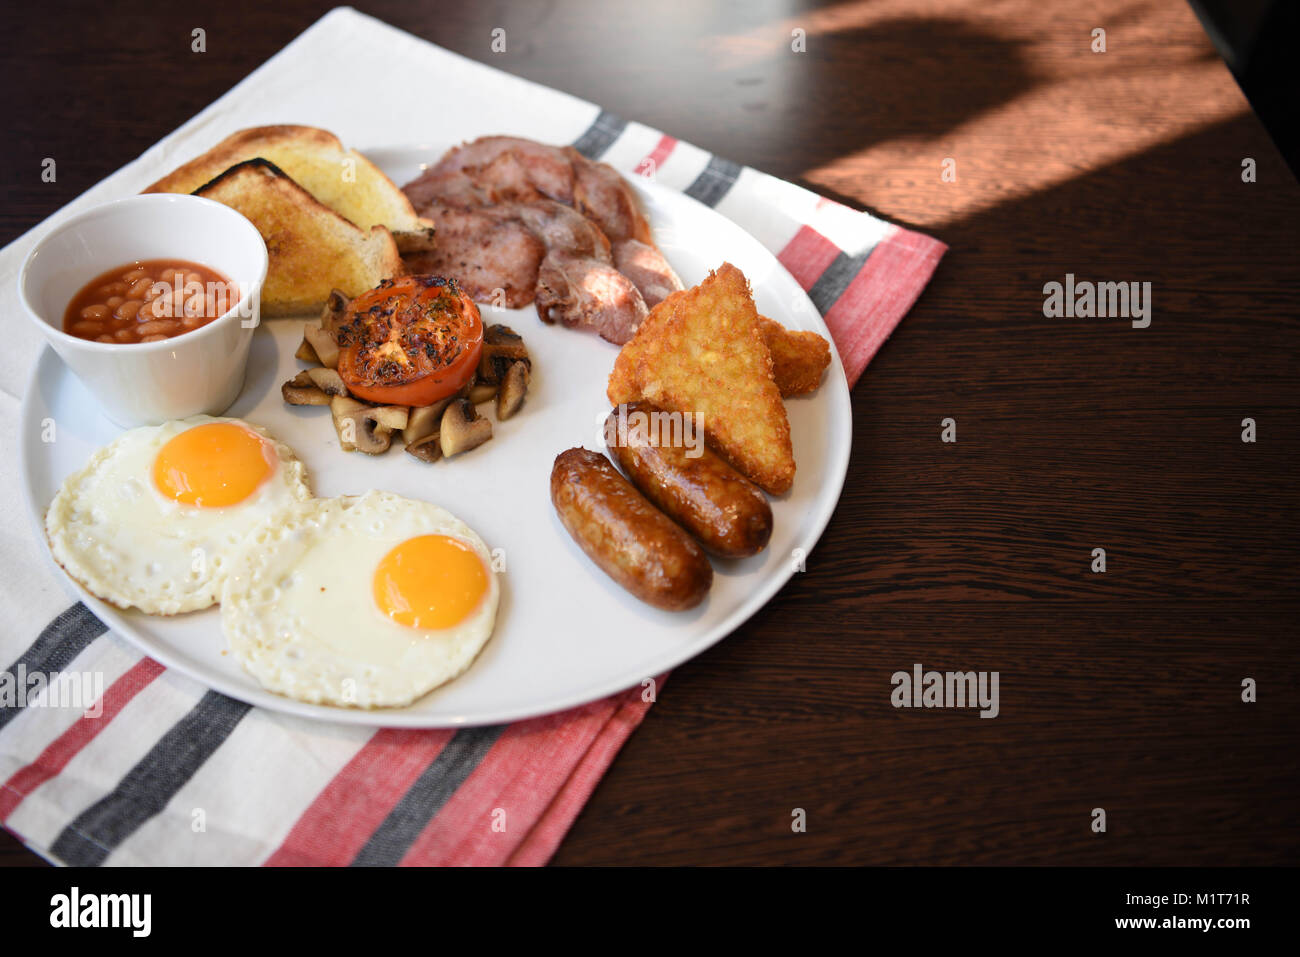 traditional full English breakfast served and ready to eat with fried eggs sausages mushrooms bacon beans toast - Stock Image